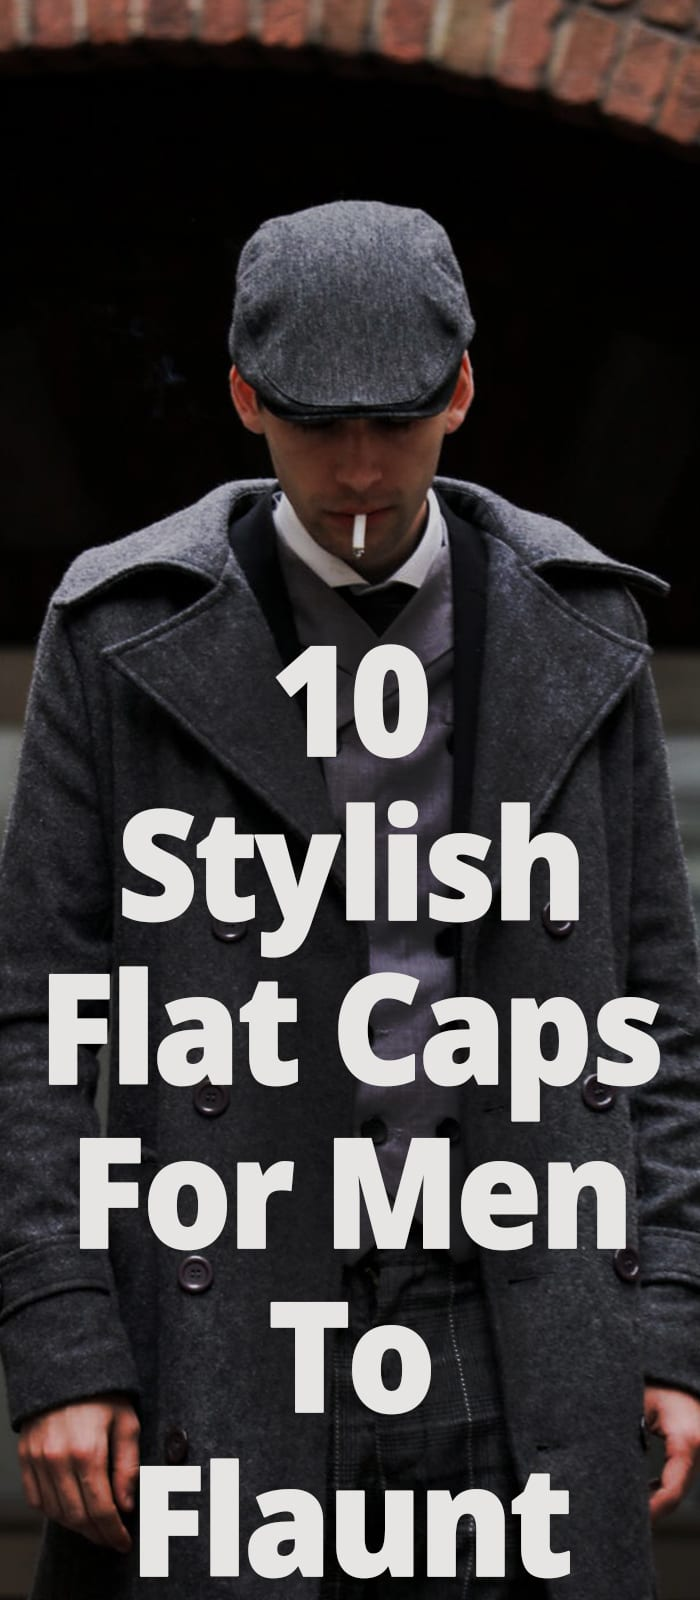 STYLISH FLAT CAPS FOR MEN TO FLAUNT